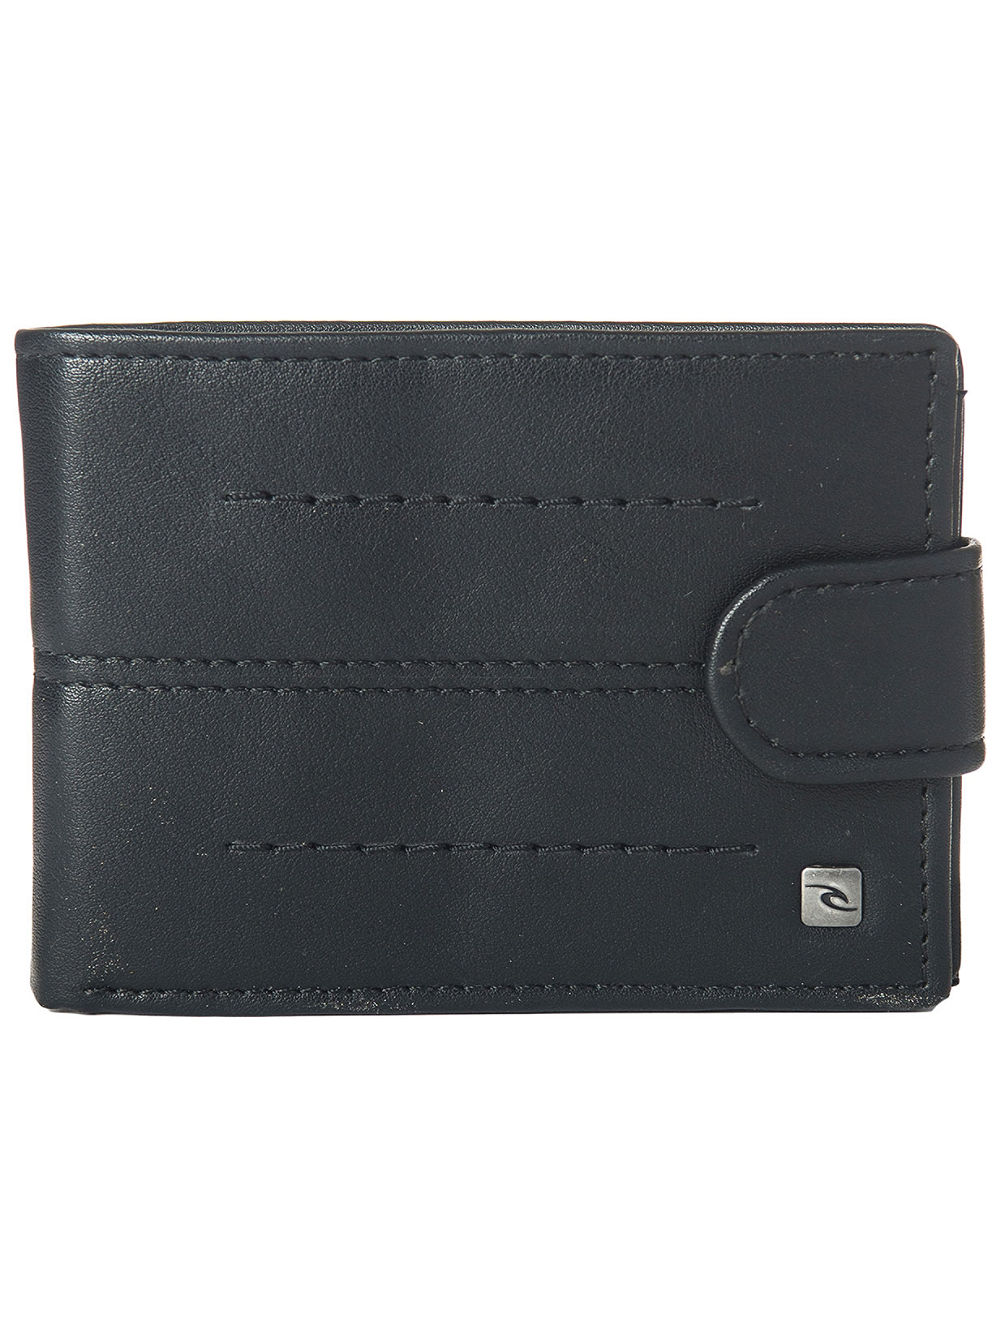 Stitch Clip Slim Wallet